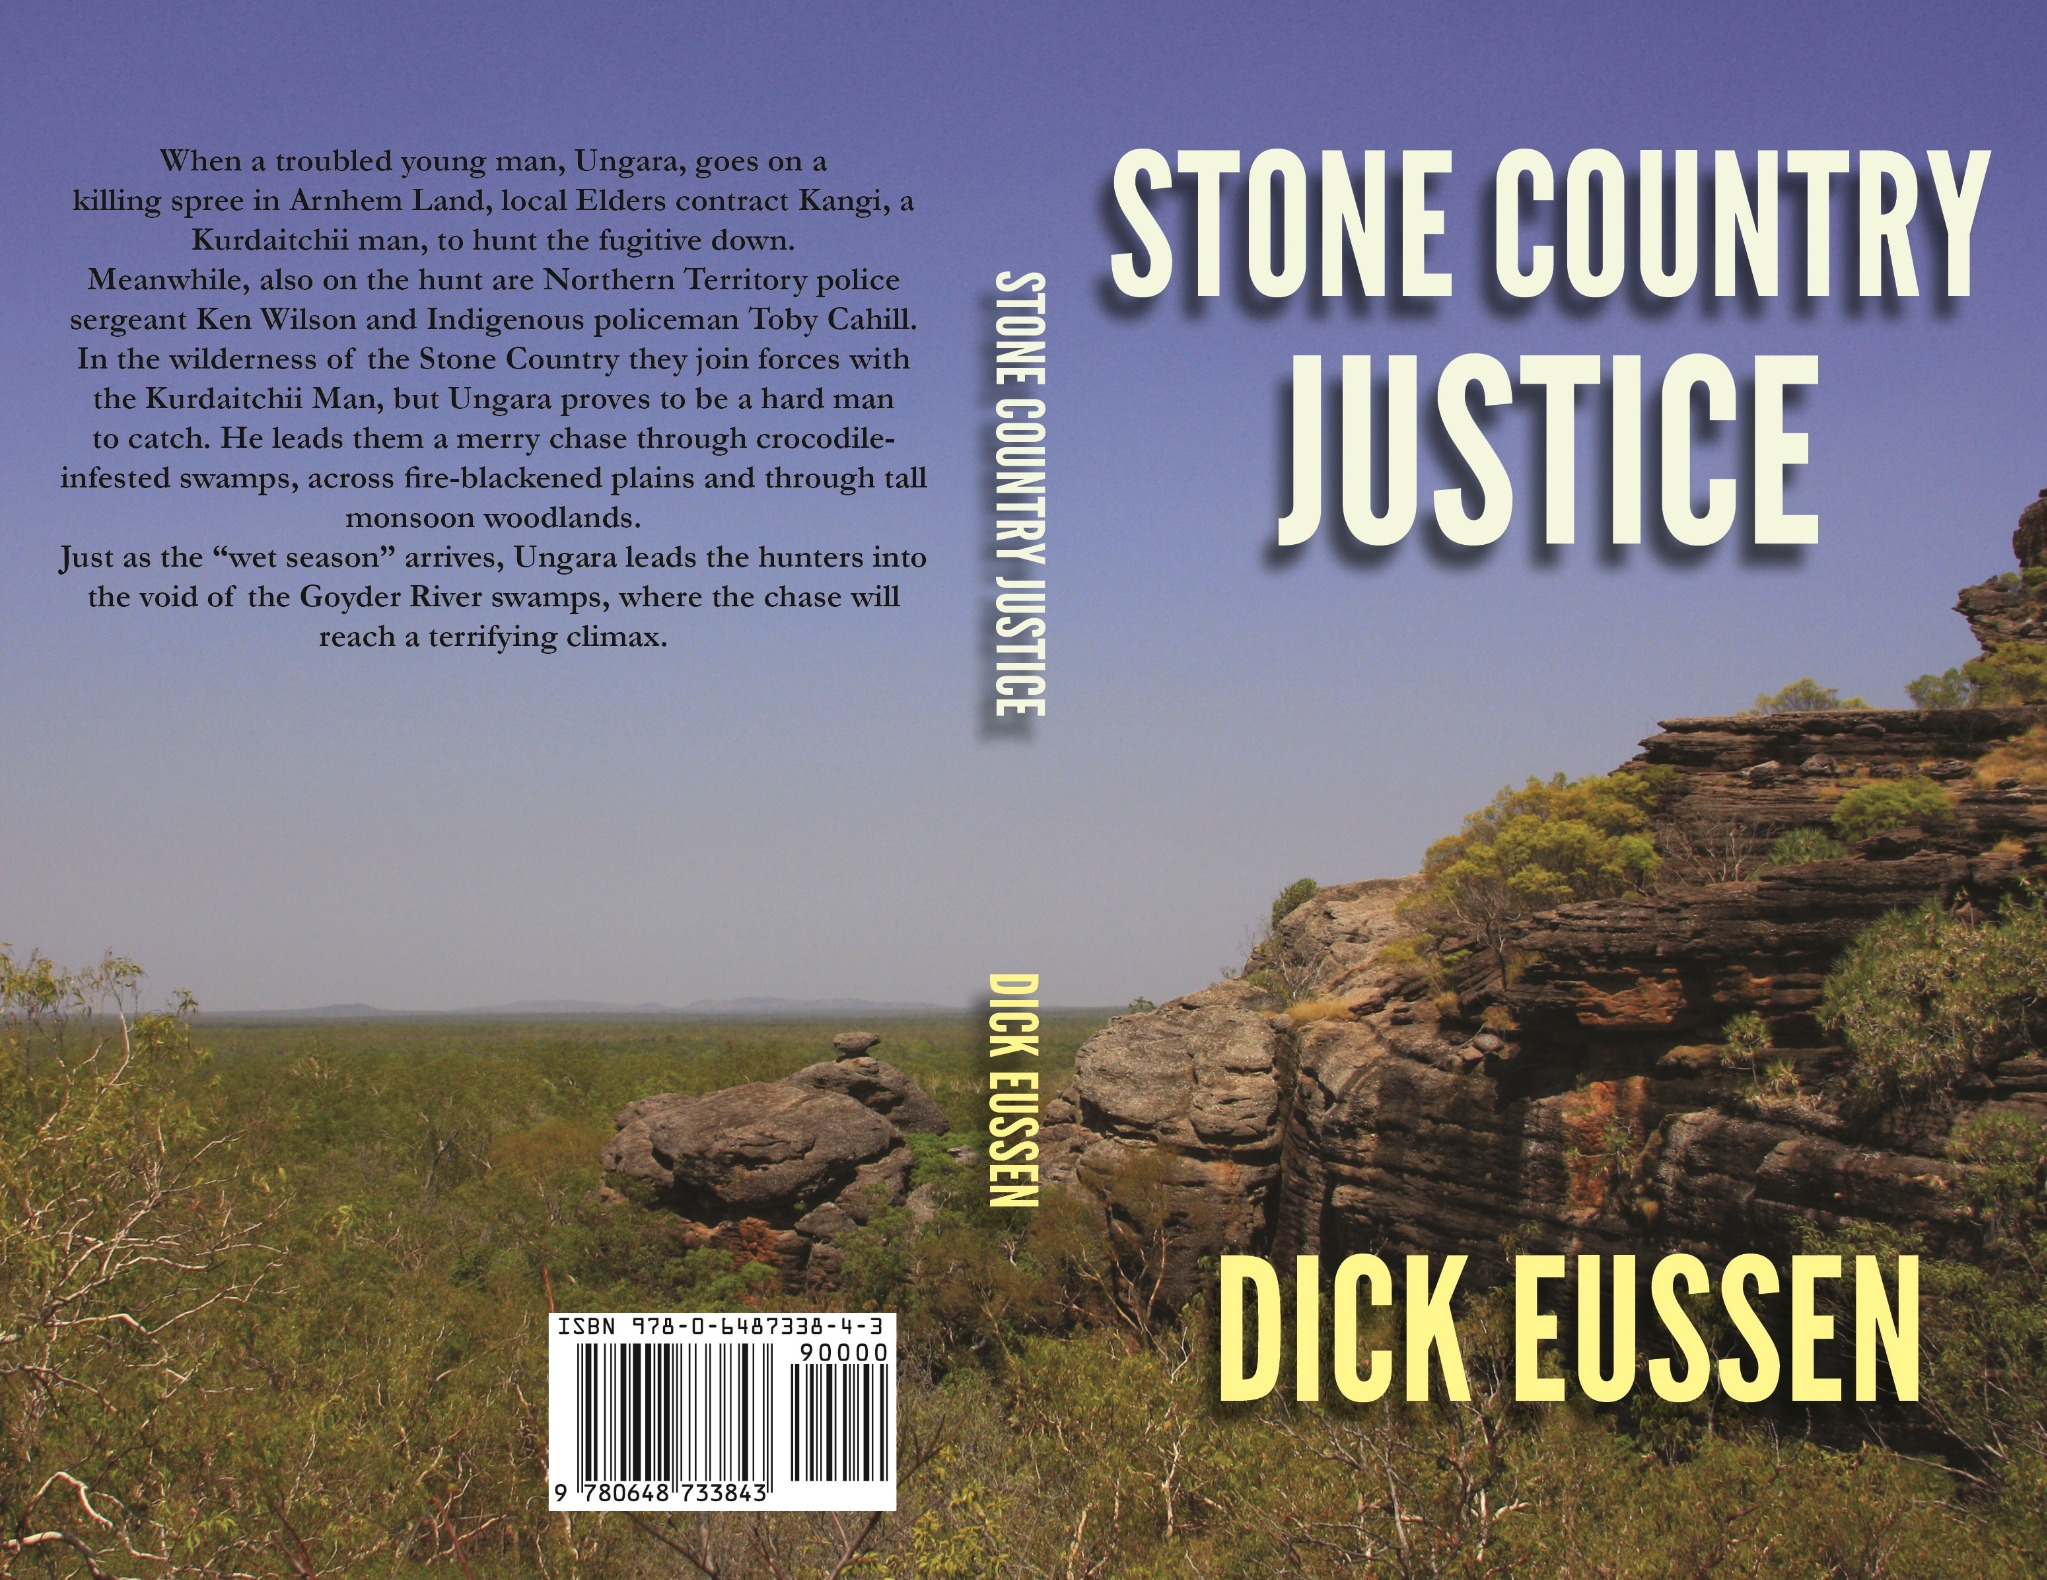 Stone Country Justice by Dick Eussen - PAPERBACK